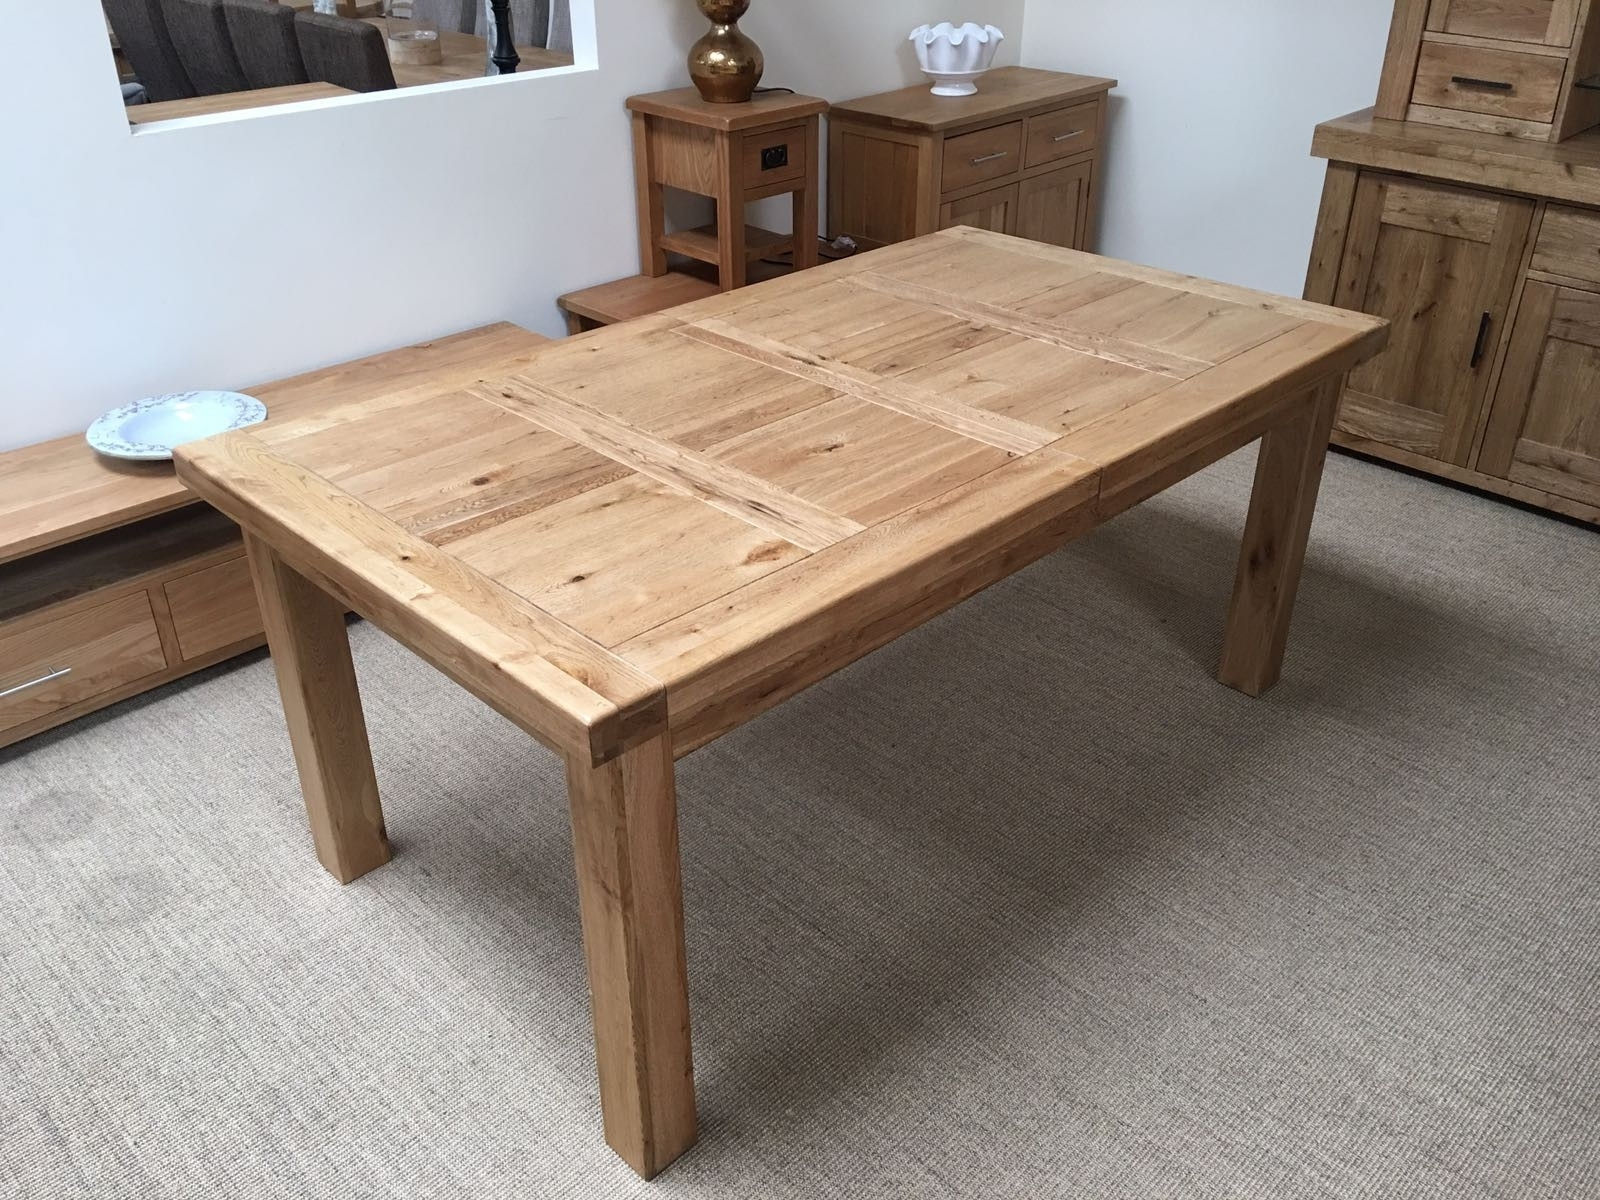 New Oak Dining Table : Ugarelay – Ideas To Care Oak Dining Table Inside Most Popular Oak Dining Tables (Gallery 10 of 25)